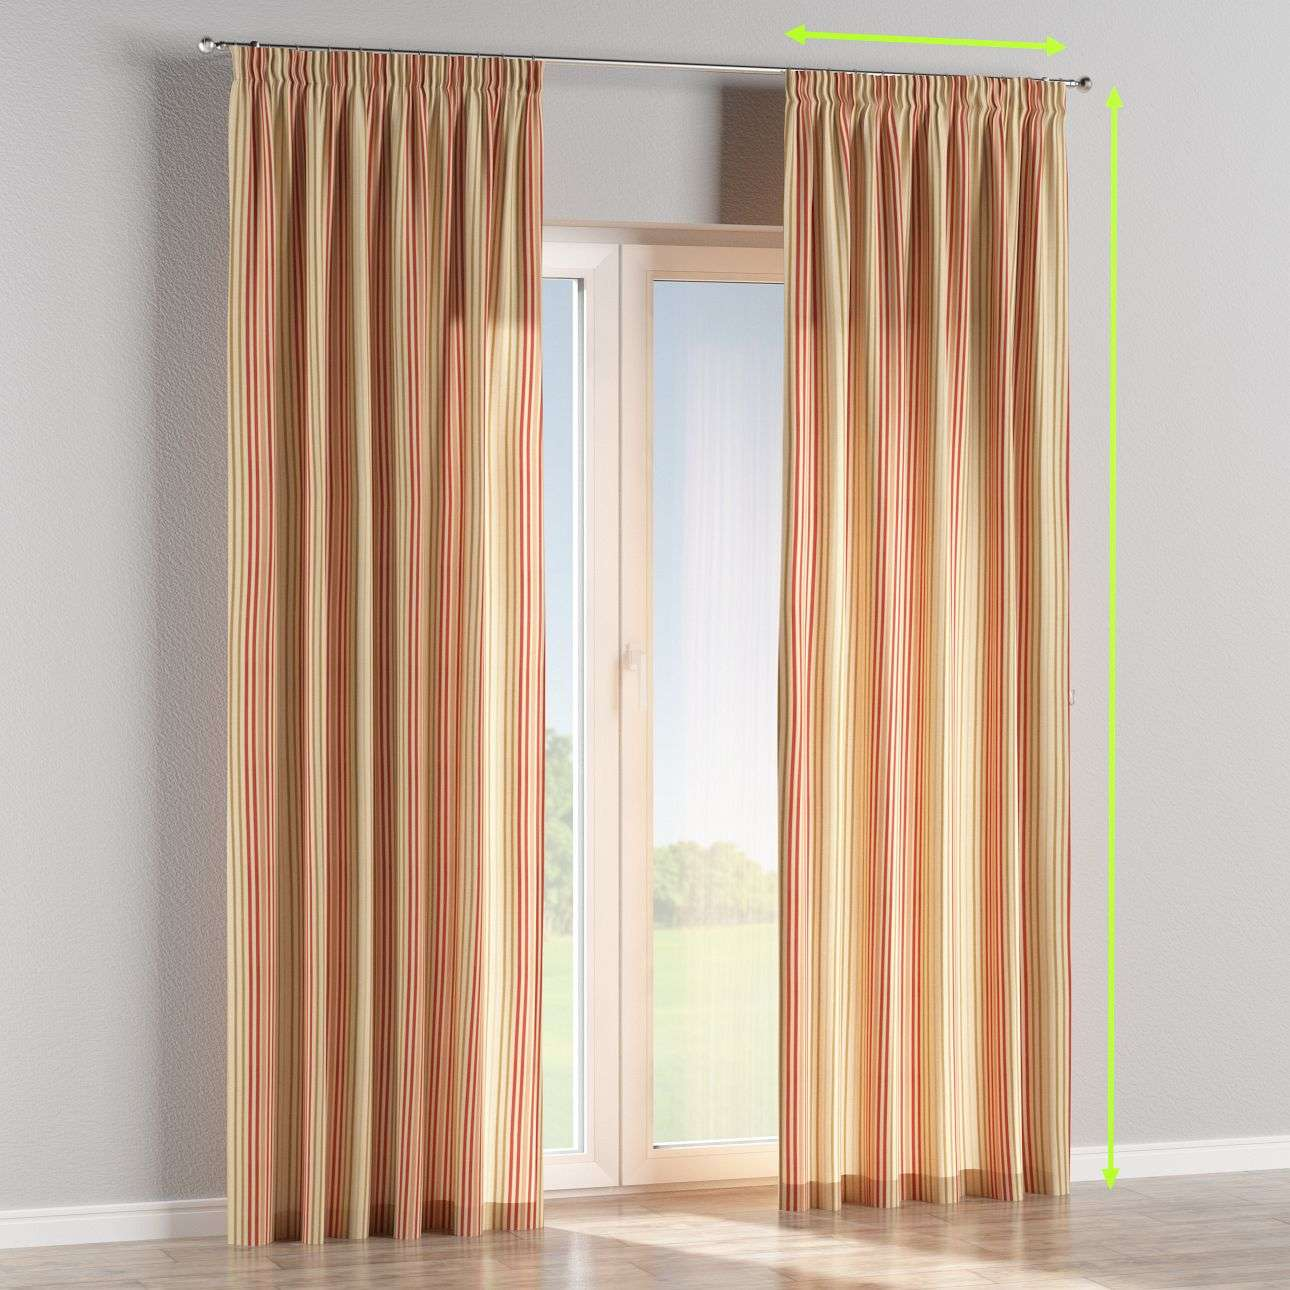 Pencil pleat lined curtains in collection Londres, fabric: 122-05